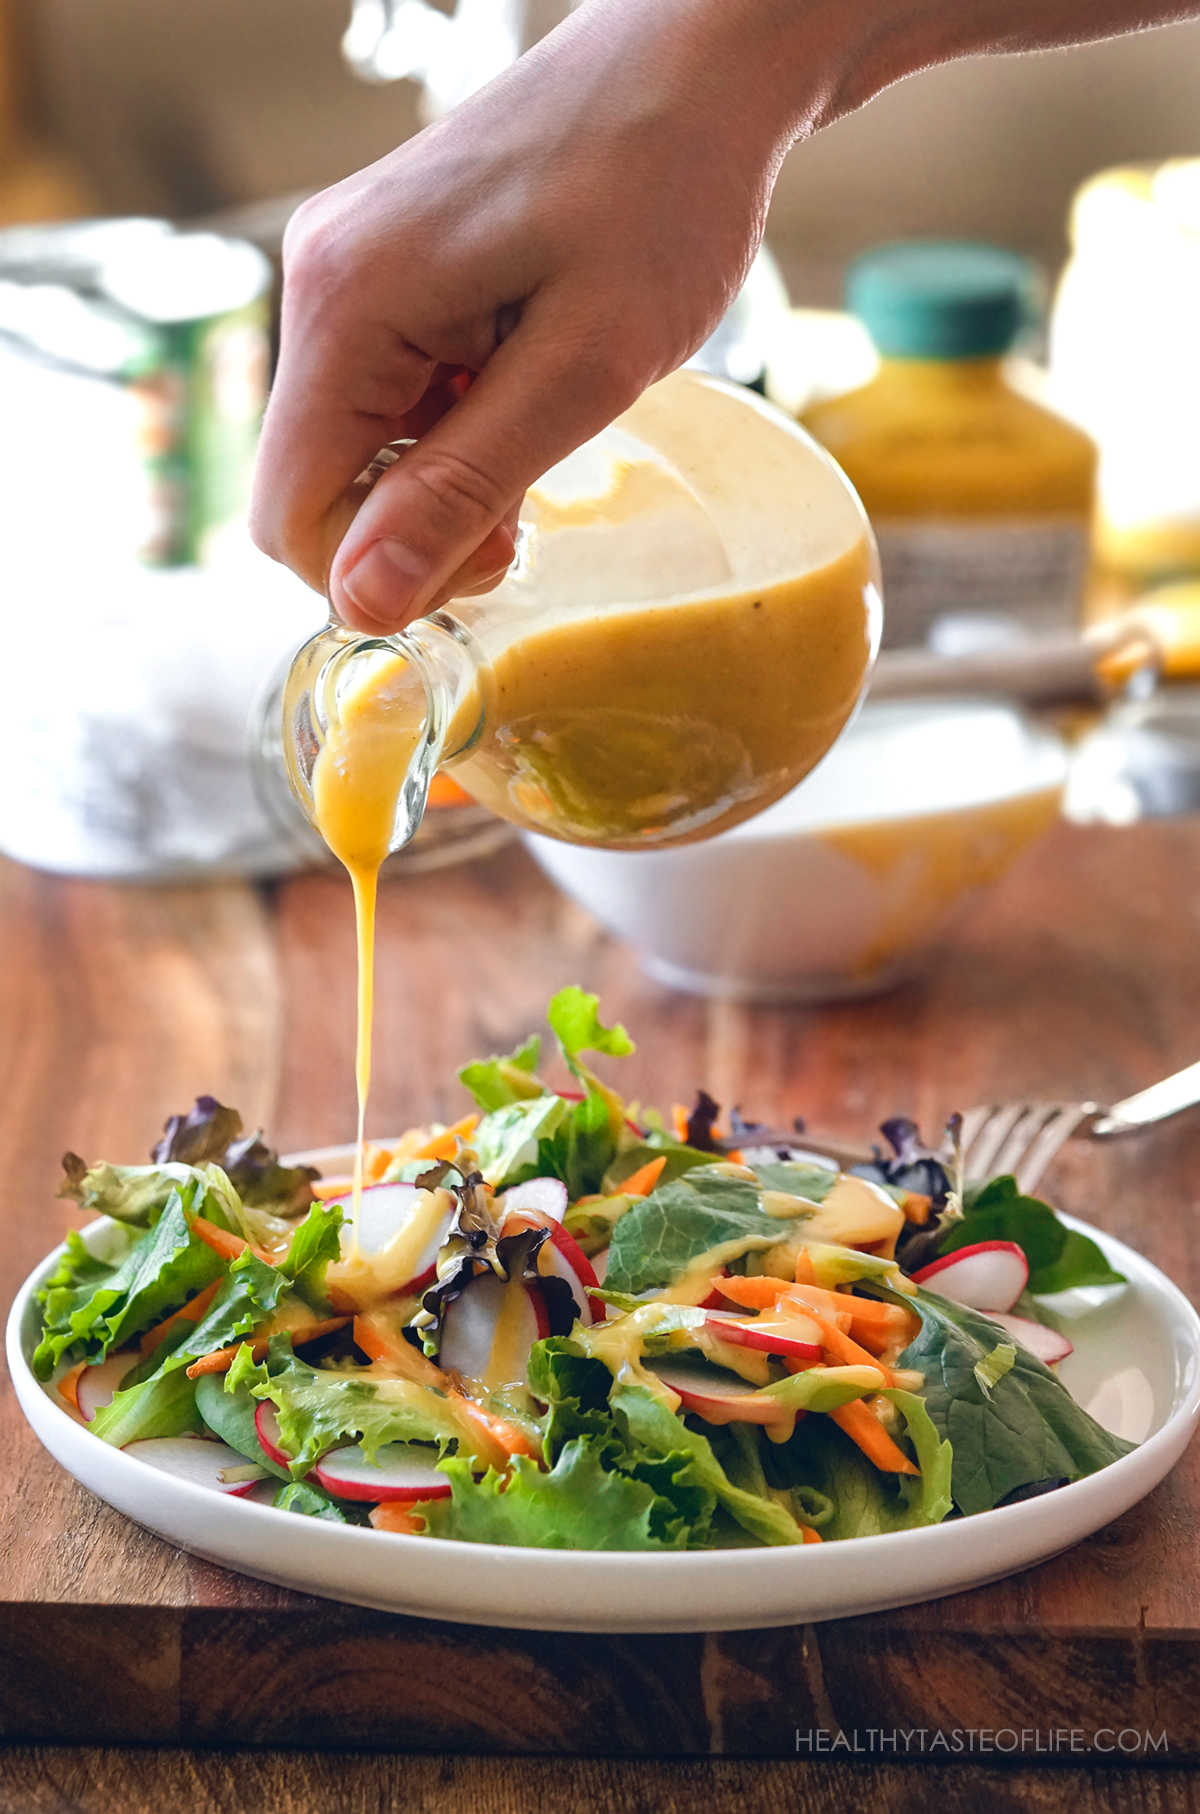 Pouring the honey mustard sauce over a plate of salad.